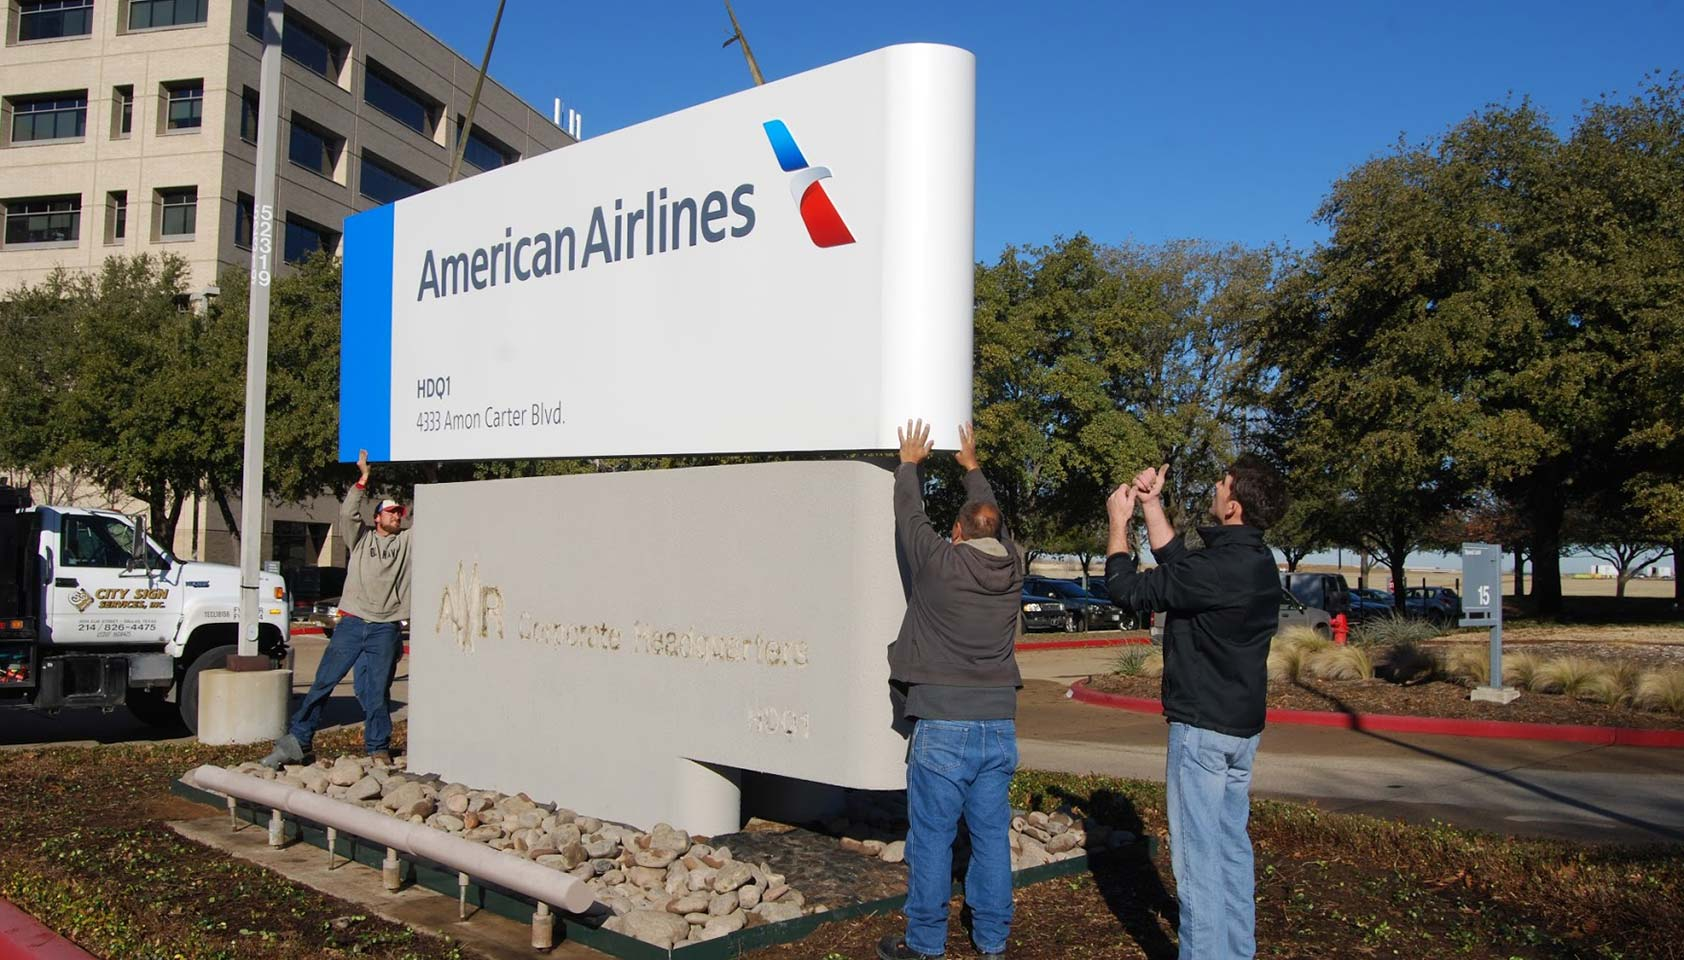 Talking about the new American Airlines logo